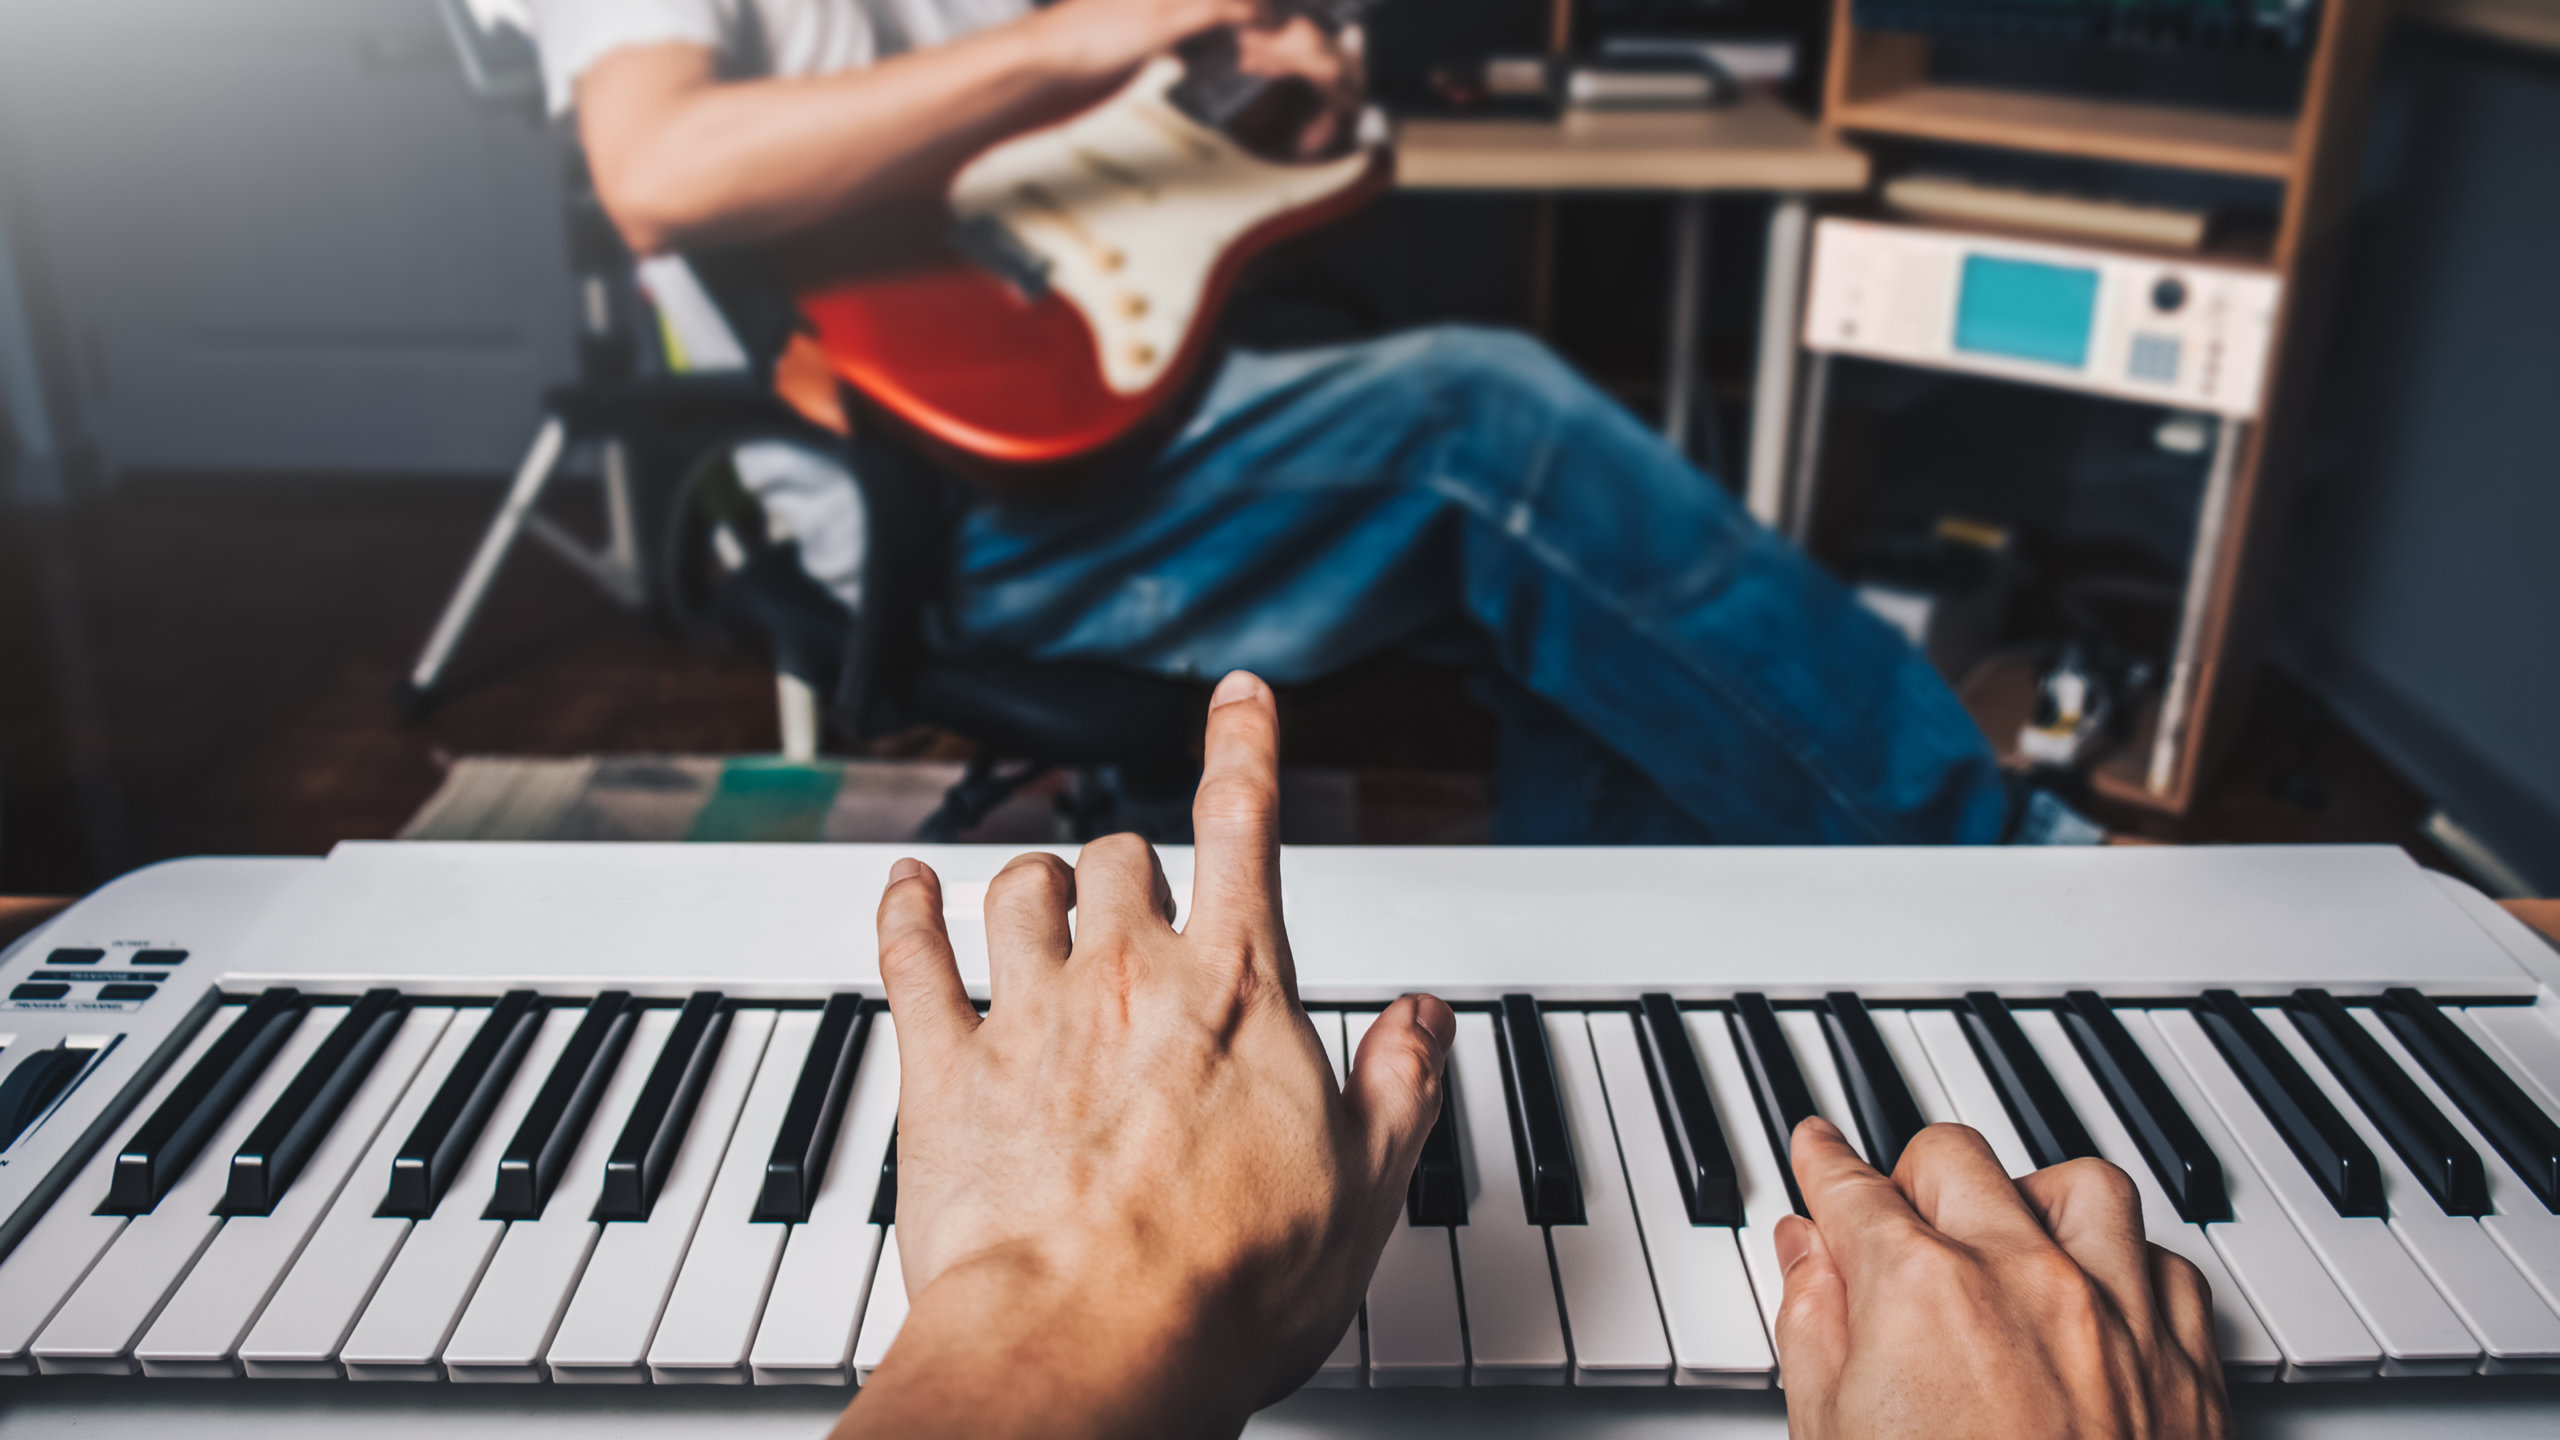 Songwriting 101: Start with the melody